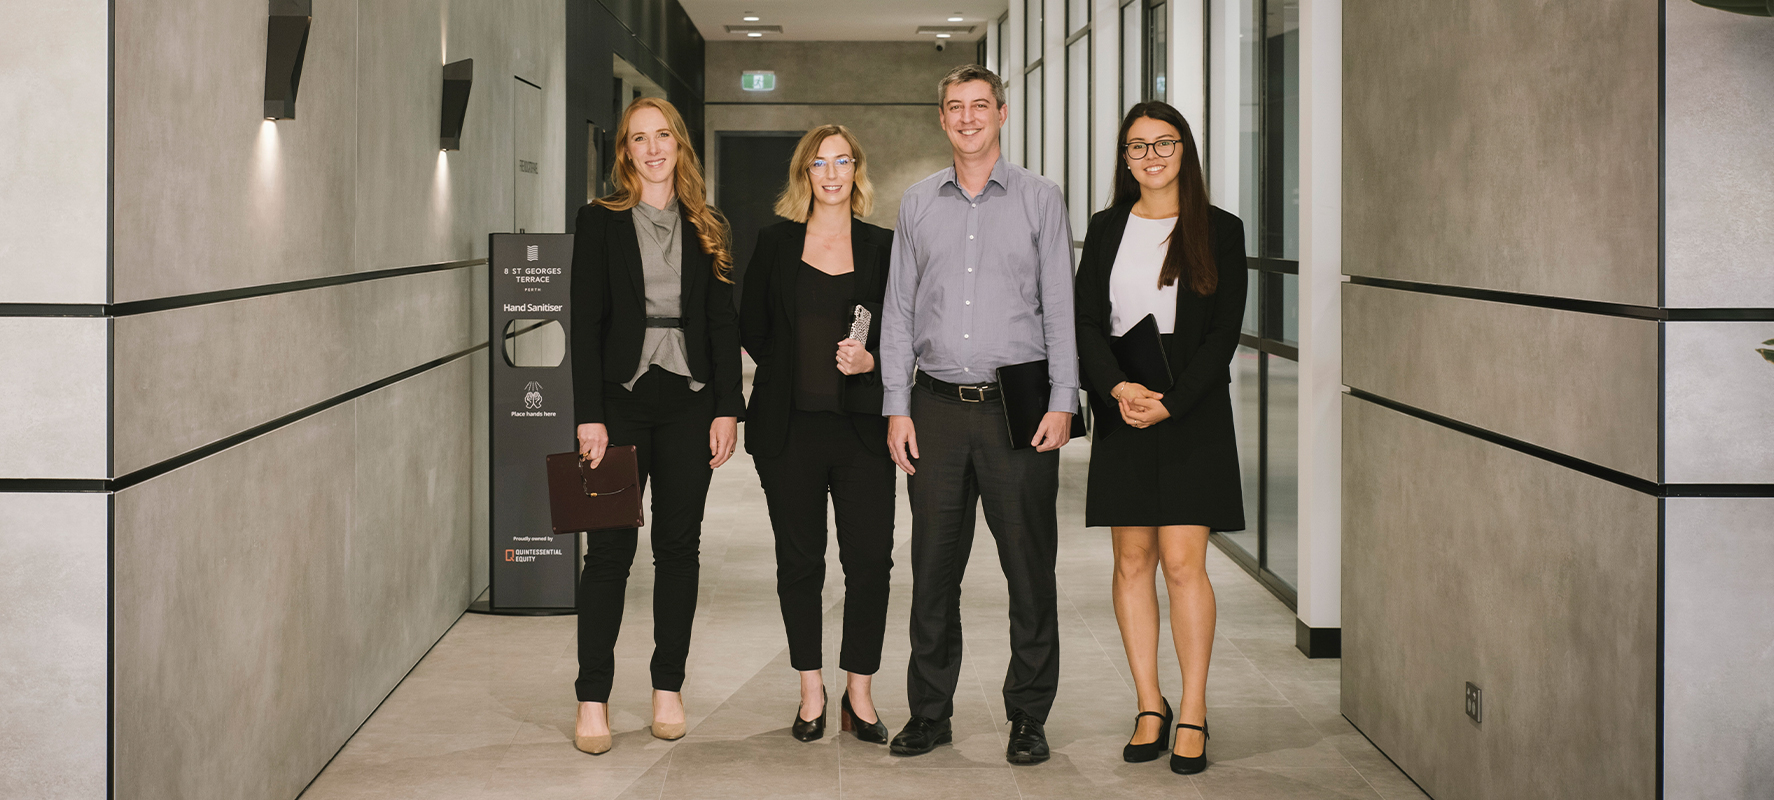 Perth Law Firm Specialising in Litigation, Employment & Safety Law